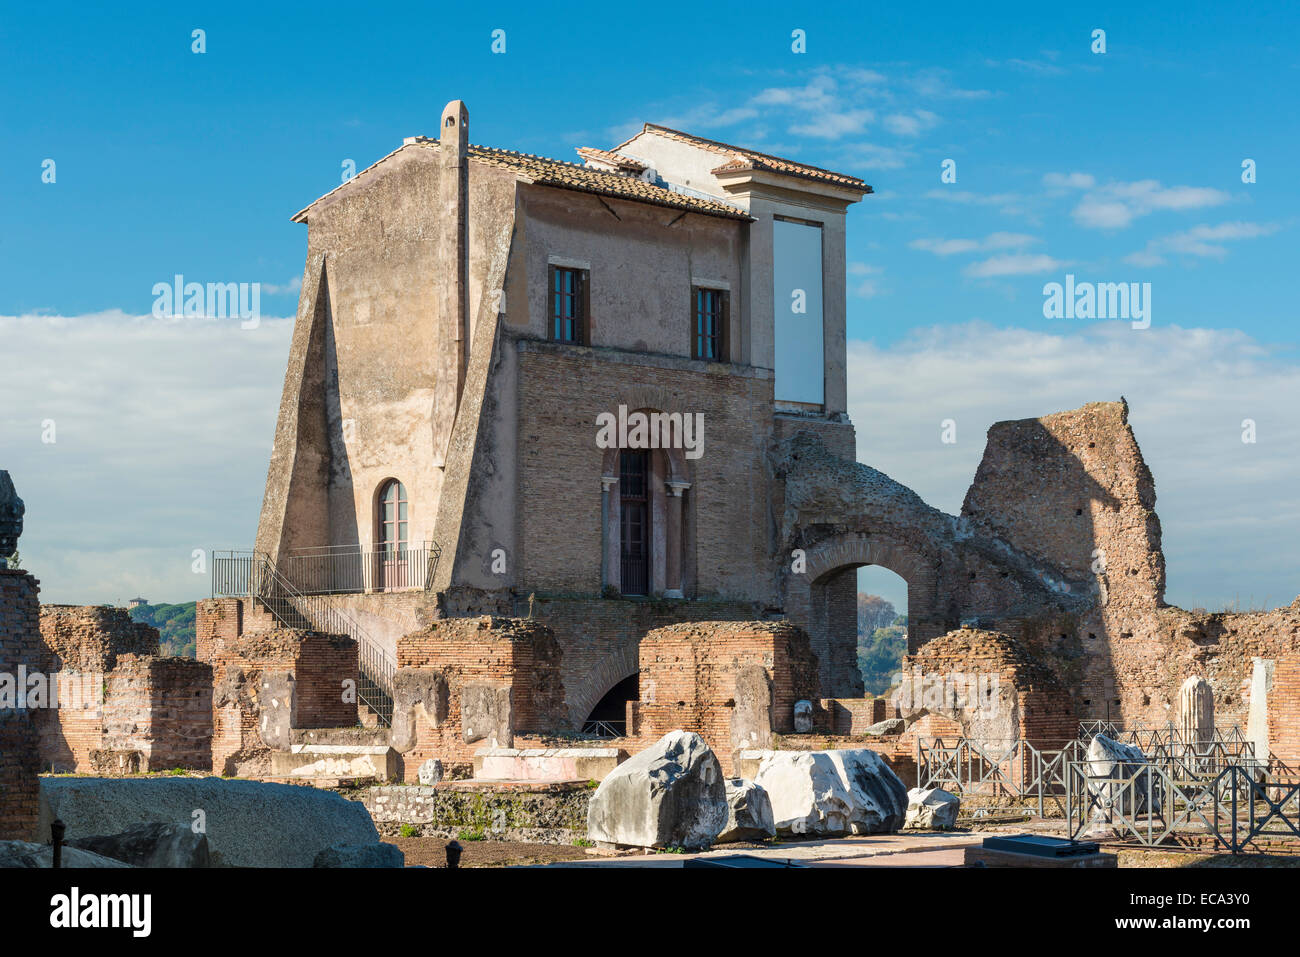 Domus Flavia, or Flavian Palace, on the Palatine, Rione X Campitelli, Rome, Lazio, Italy - Stock Image